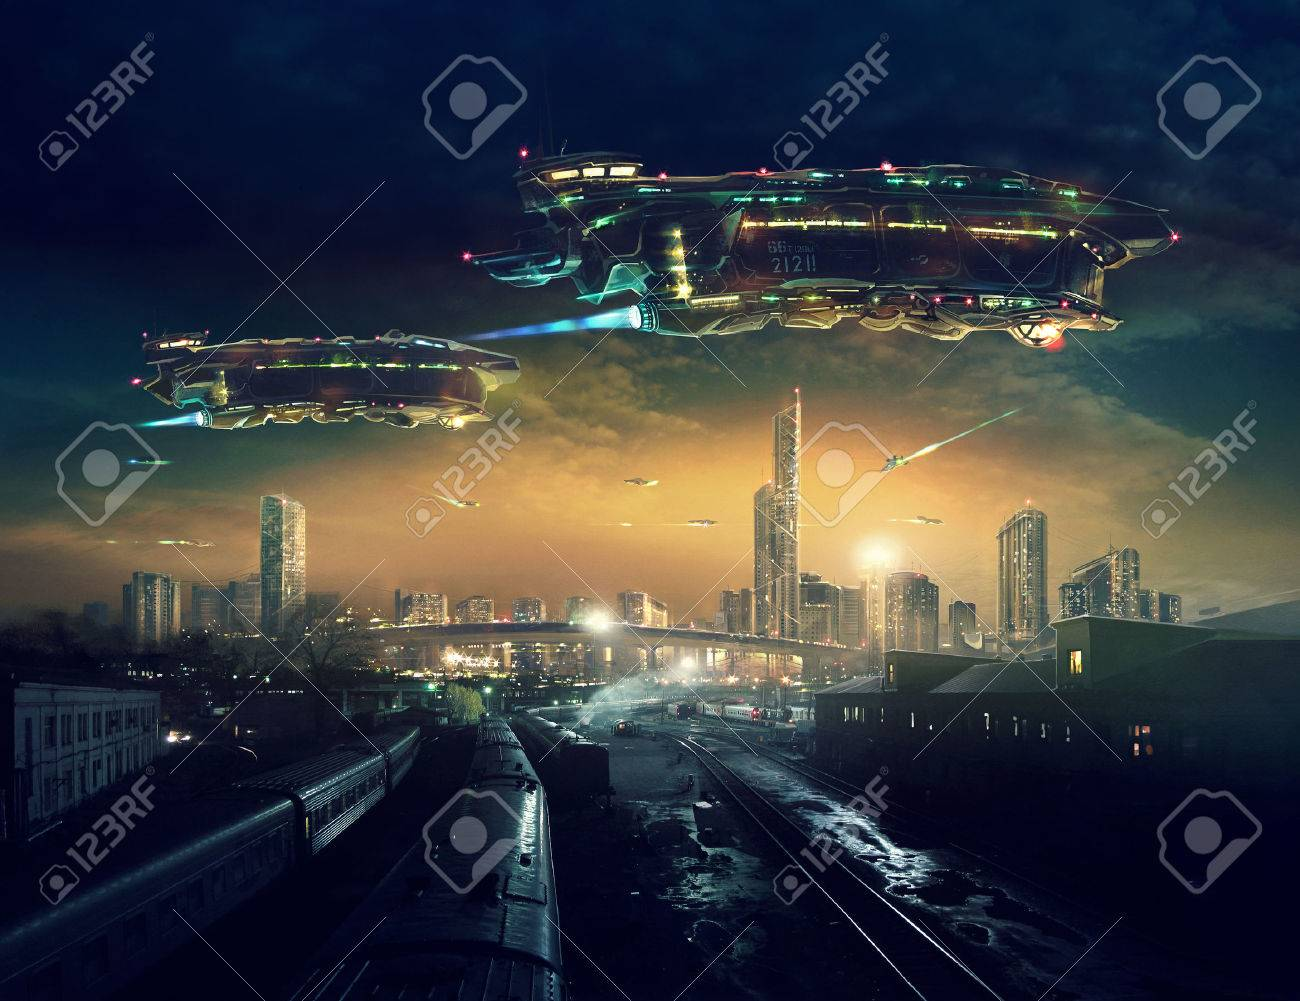 Urban landscape of post apocalyptic future with flying spaceships. Life after a global war. Digital art. - 56876605